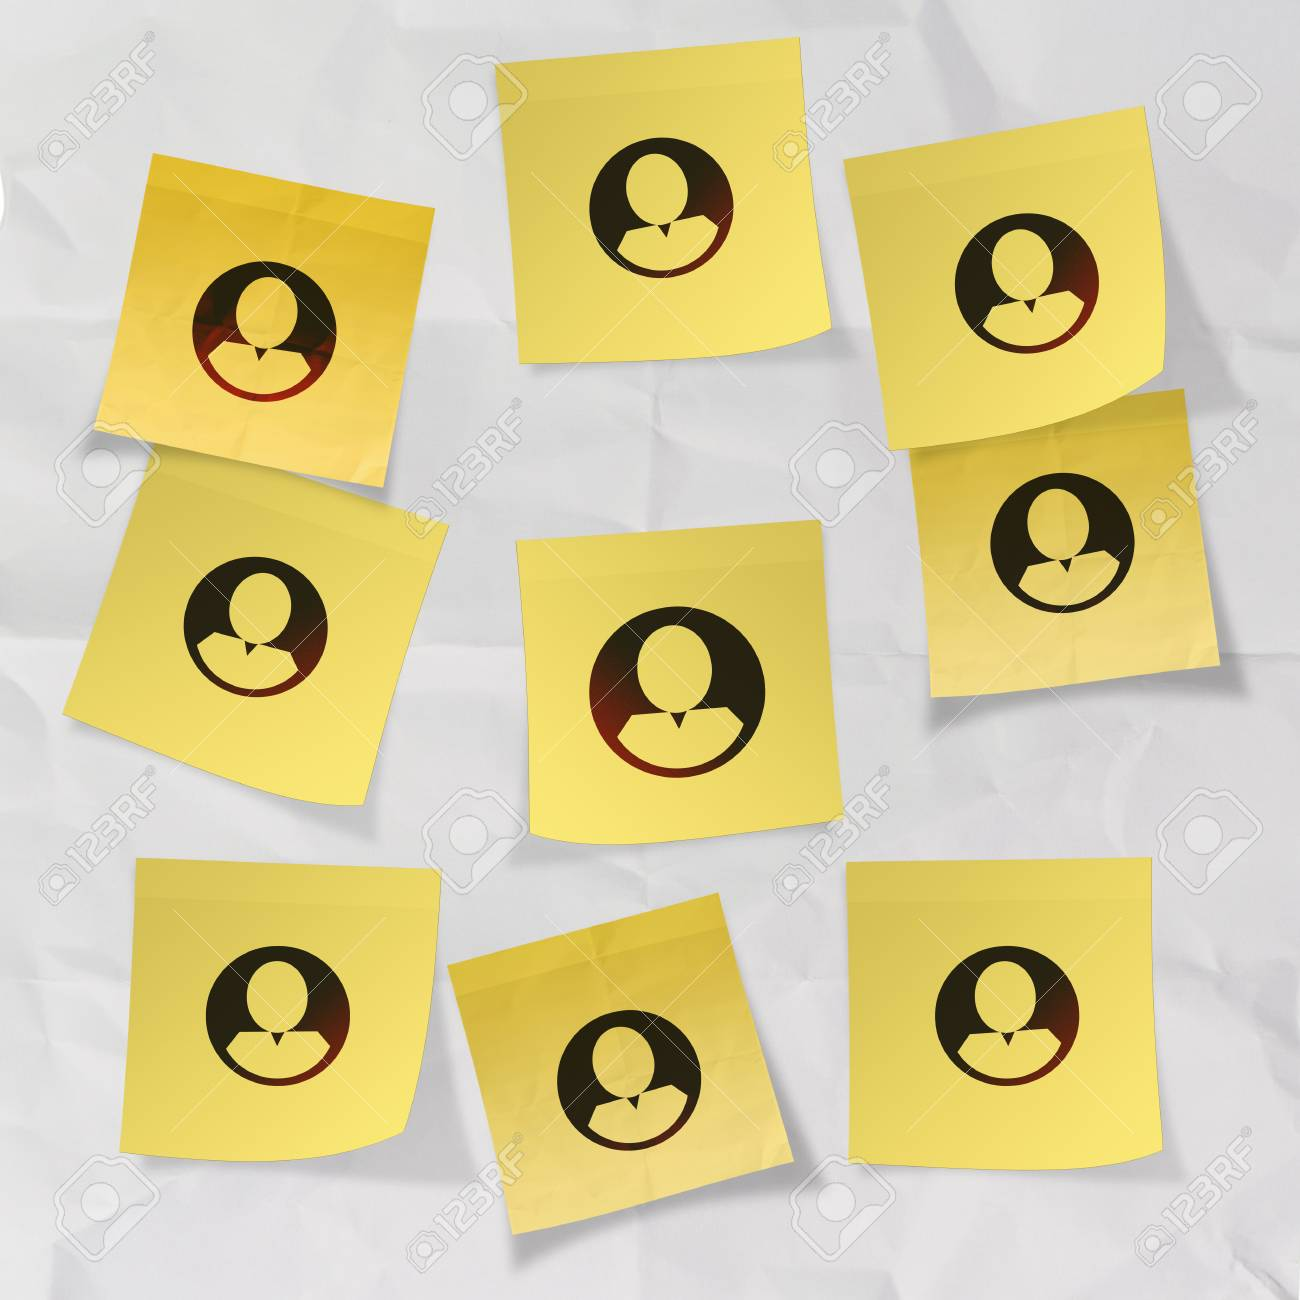 sticky note social network icon on crumpled paper background as concept Stock Photo - 22852871